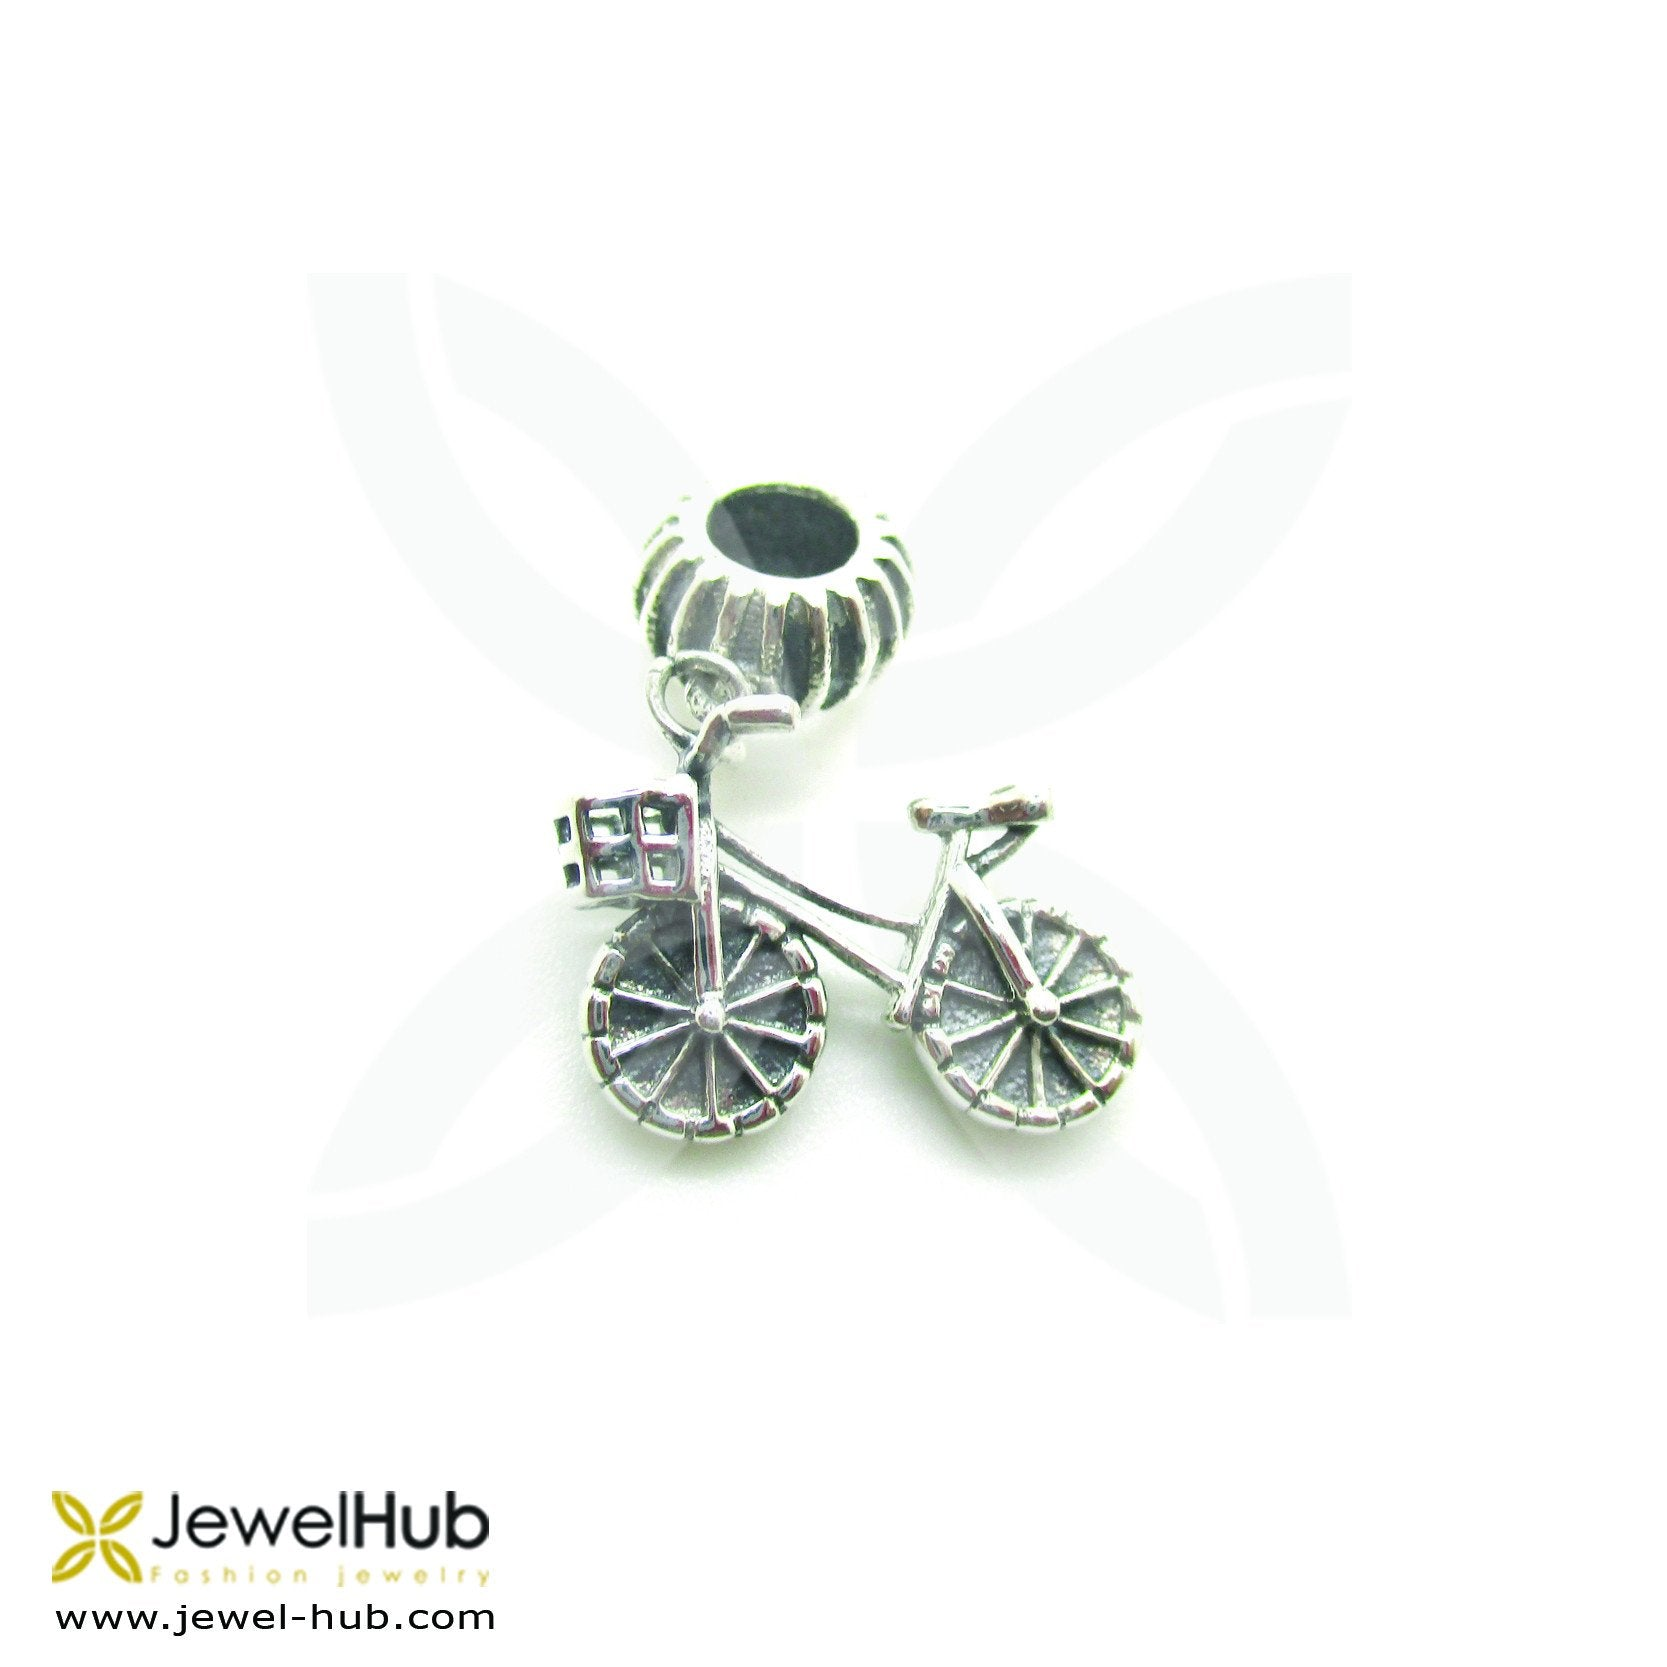 Bicycle 02 Sterling Silver 925 Charm